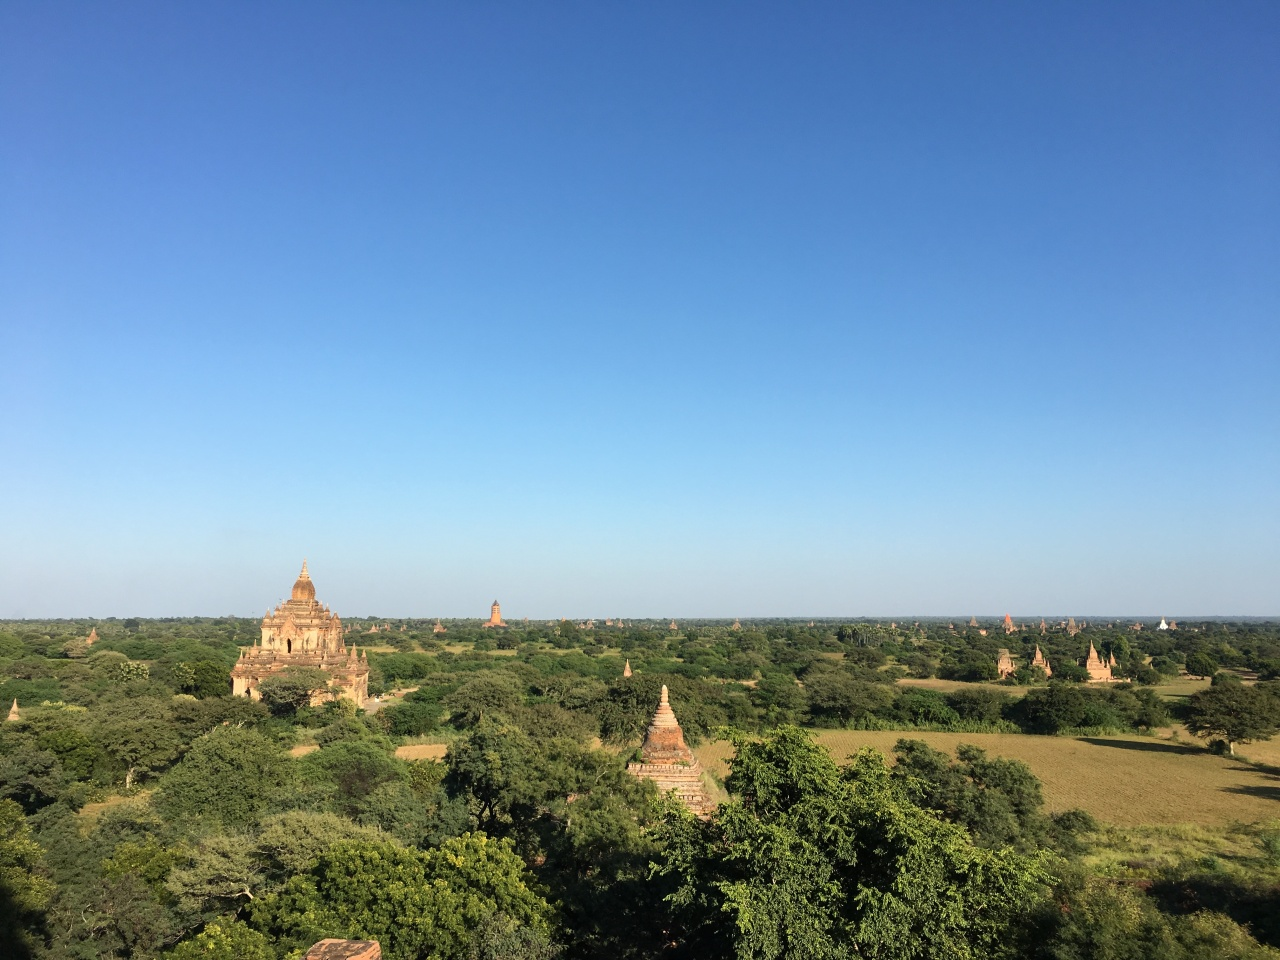 Earthquake-damaged Buddhist temples located in Bagan, Myanmar (Korea Cultural Heritage Foundation)